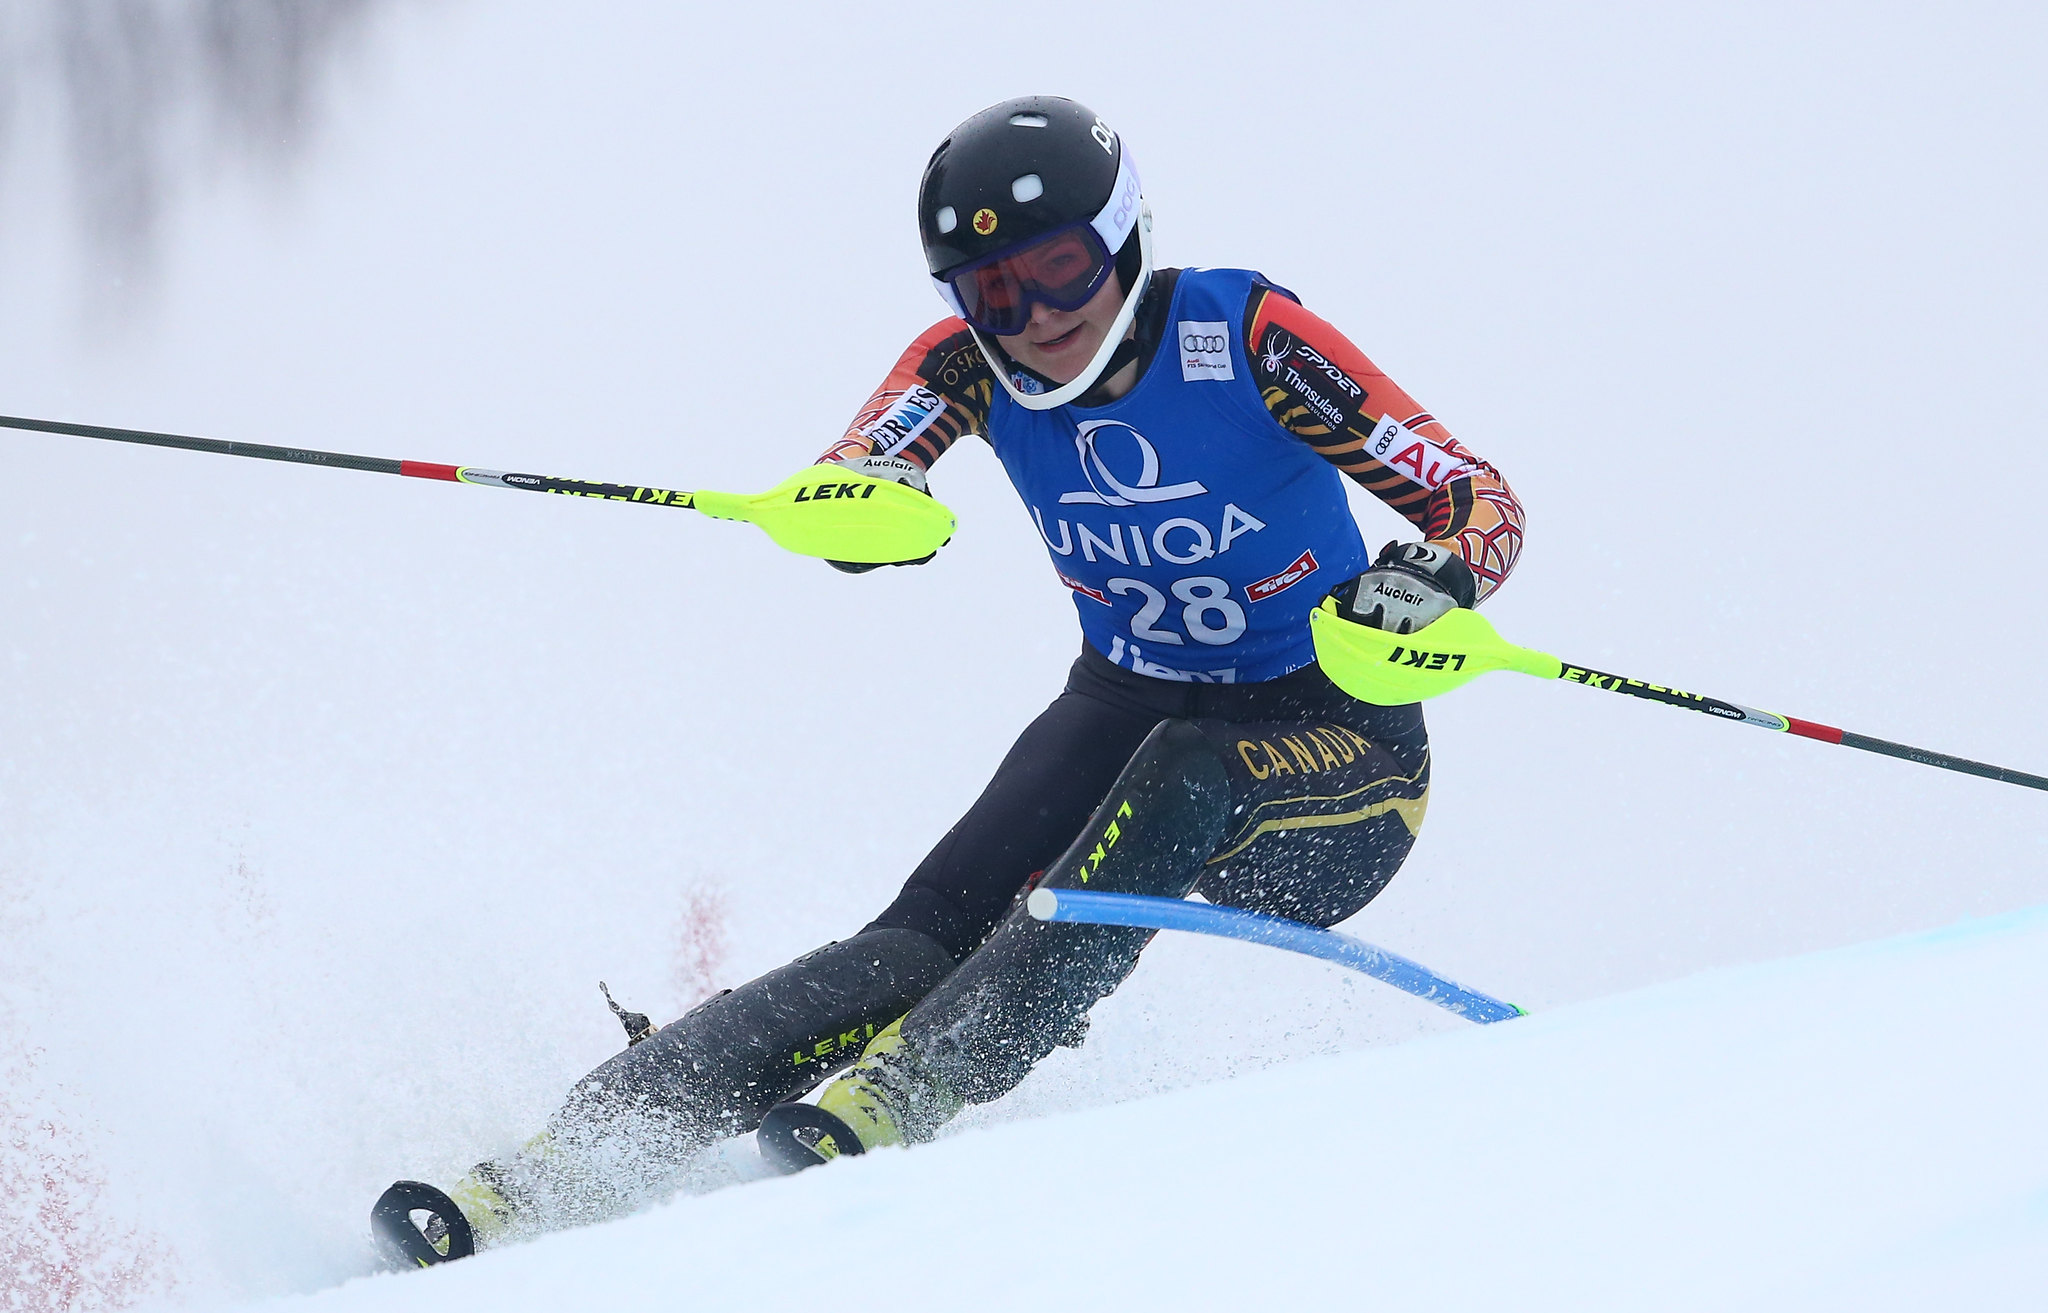 Elli Terwiell in action during the slalom in Lienz, AUT